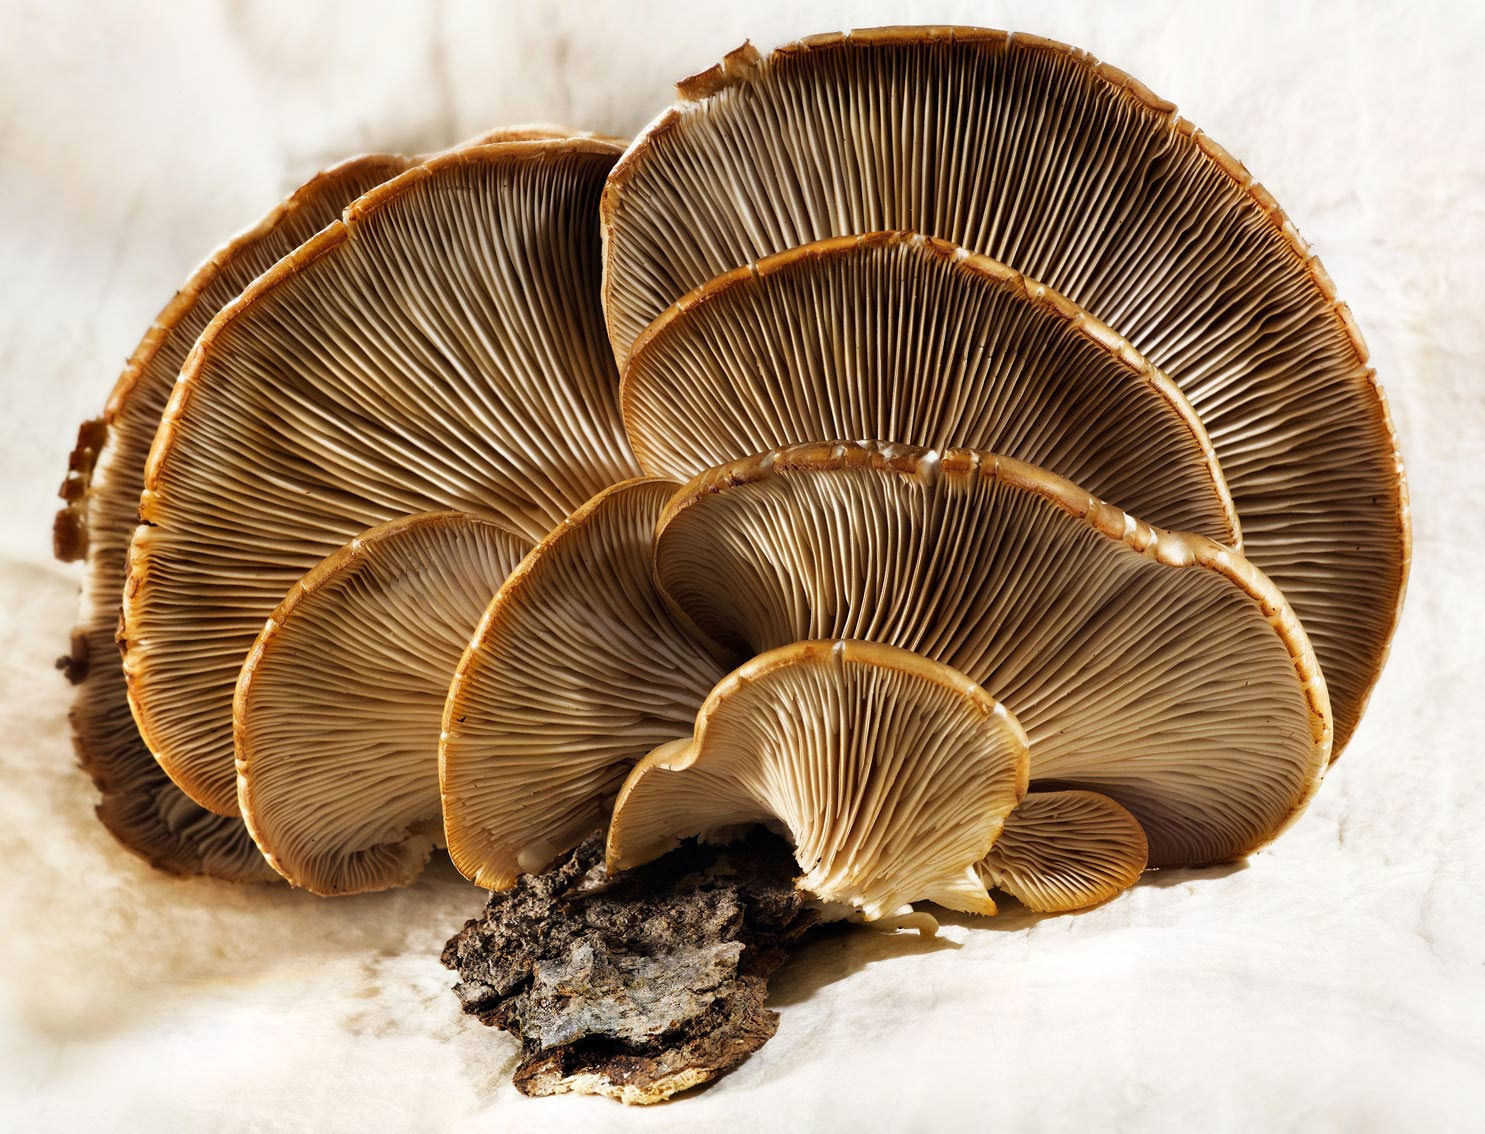 Glasshouse Assignment - David Bishop - Food Photography - Mushroom